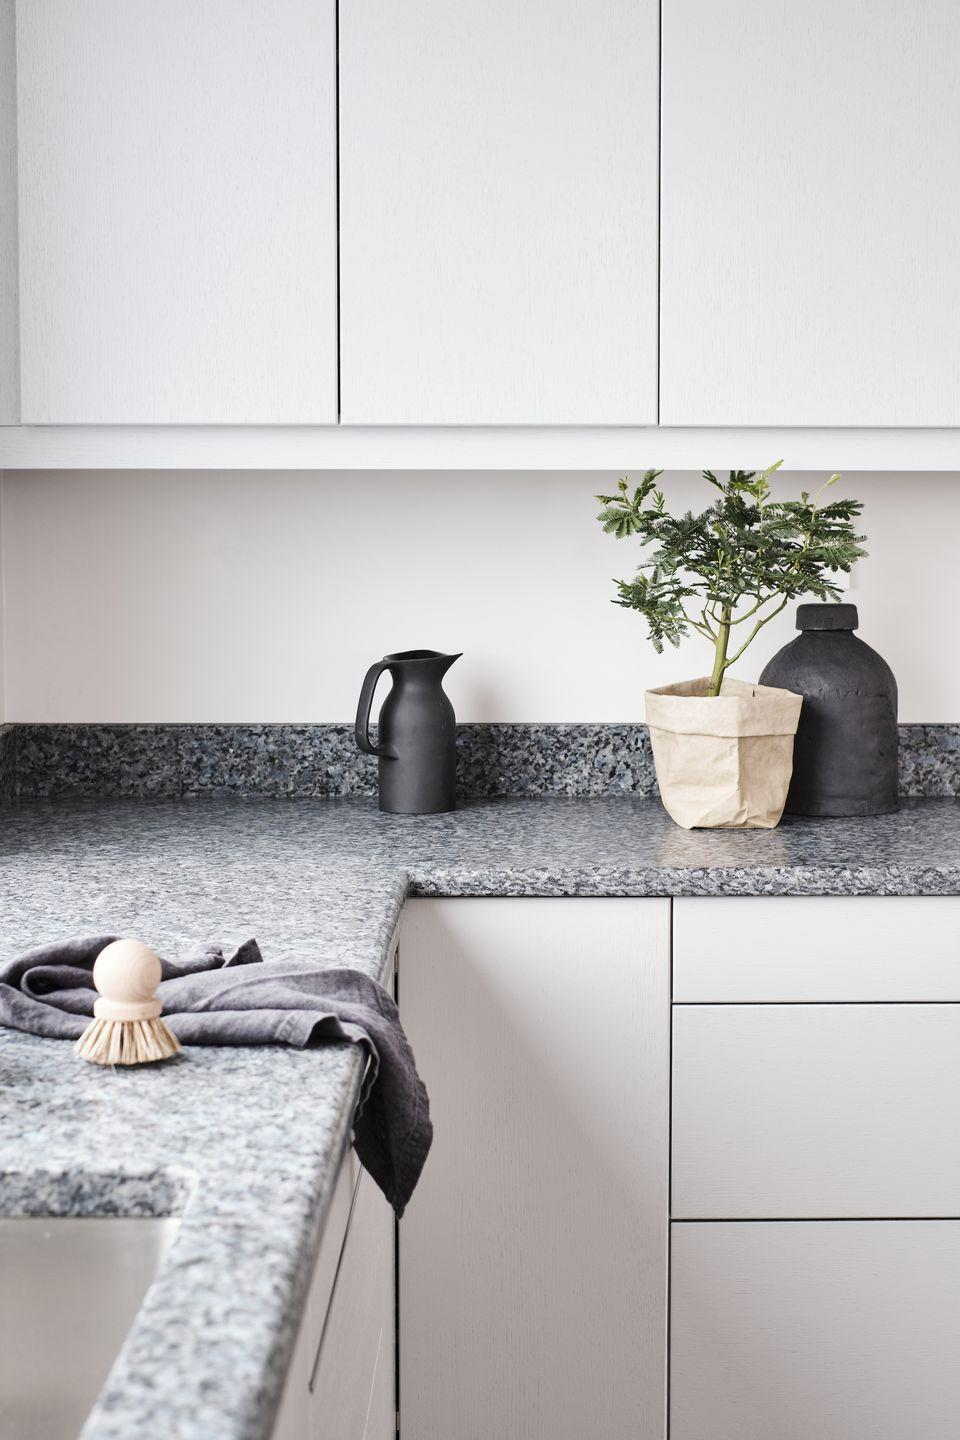 """<p>Countertops are one of the hardest-working elements of a kitchen. If yours is looking a little tired, a new one can bring a whole new look – it's a great chance to introduce a completely different material.</p><p>Pictured: Royal worktop, from £680/sq m, <a href=""""https://lundhsrealstone.com/uk"""" rel=""""nofollow noopener"""" target=""""_blank"""" data-ylk=""""slk:Lundhs"""" class=""""link rapid-noclick-resp"""">Lundhs</a></p>"""